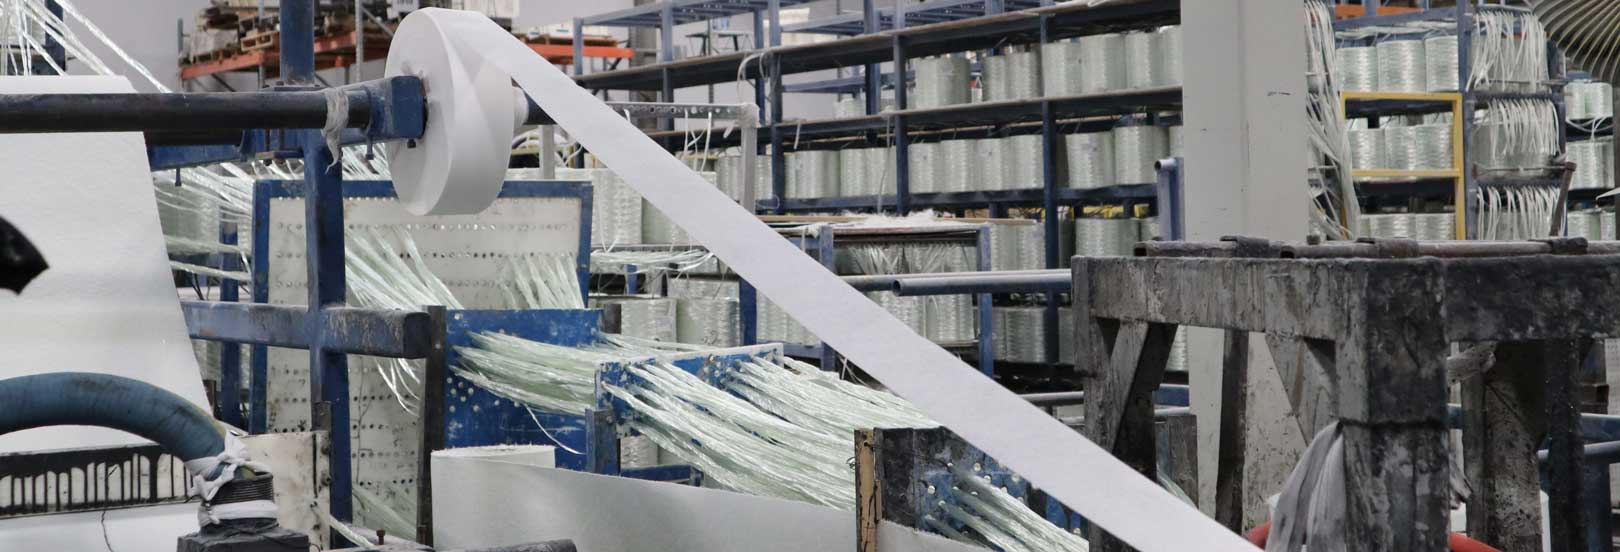 glass fibers being pulled through a machine onto a spool into a sheet of cohesive white fiberglass composite